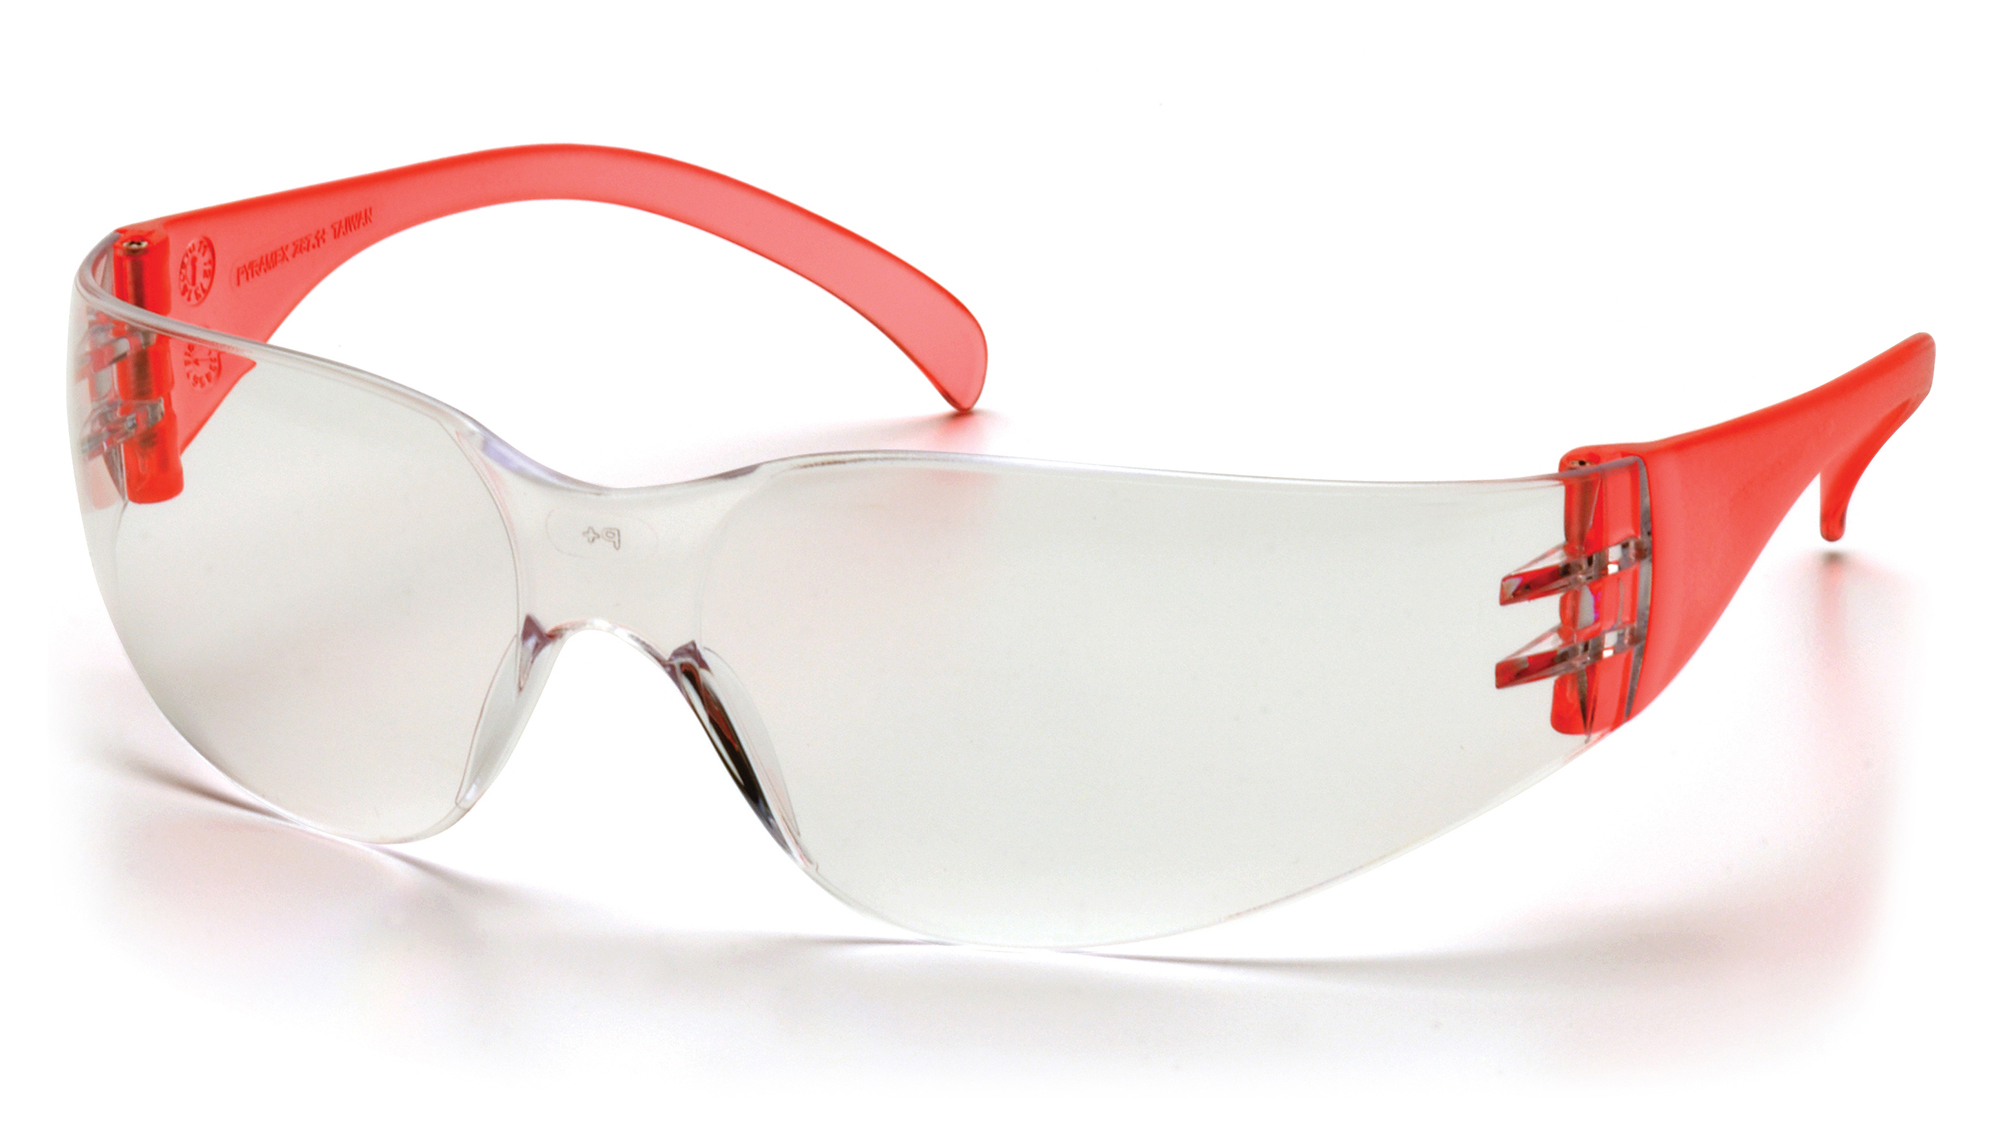 Intruder Safety Glasses - Clear Hard-coated Lens Red Temples